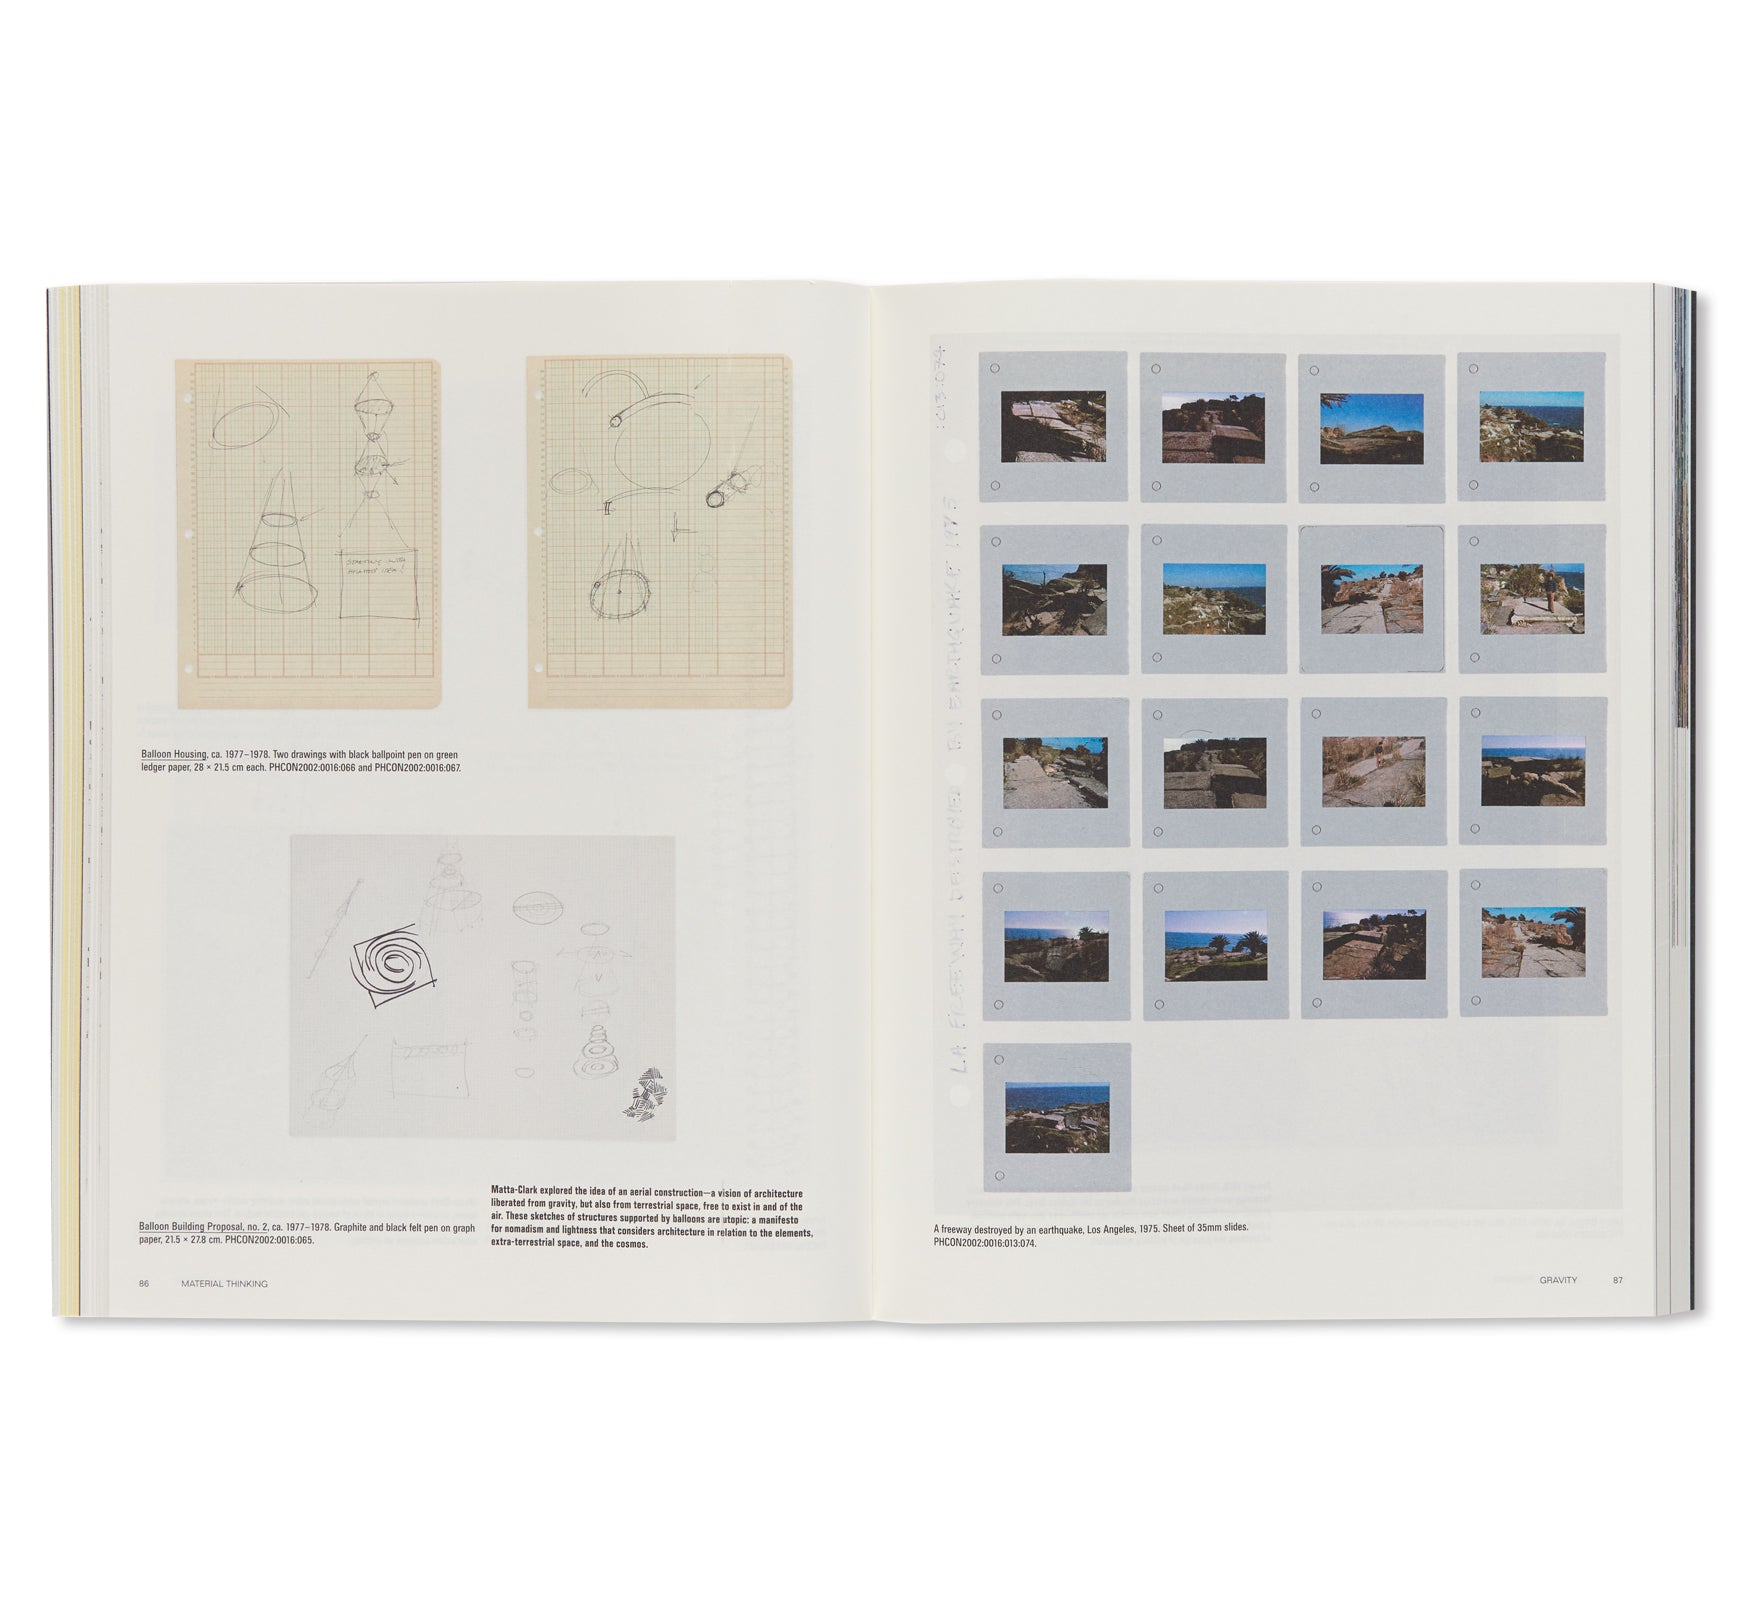 CP138 GORDON MATTA-CLARK: READINGS OF THE ARCHIVE by Gordon Matta-Clark